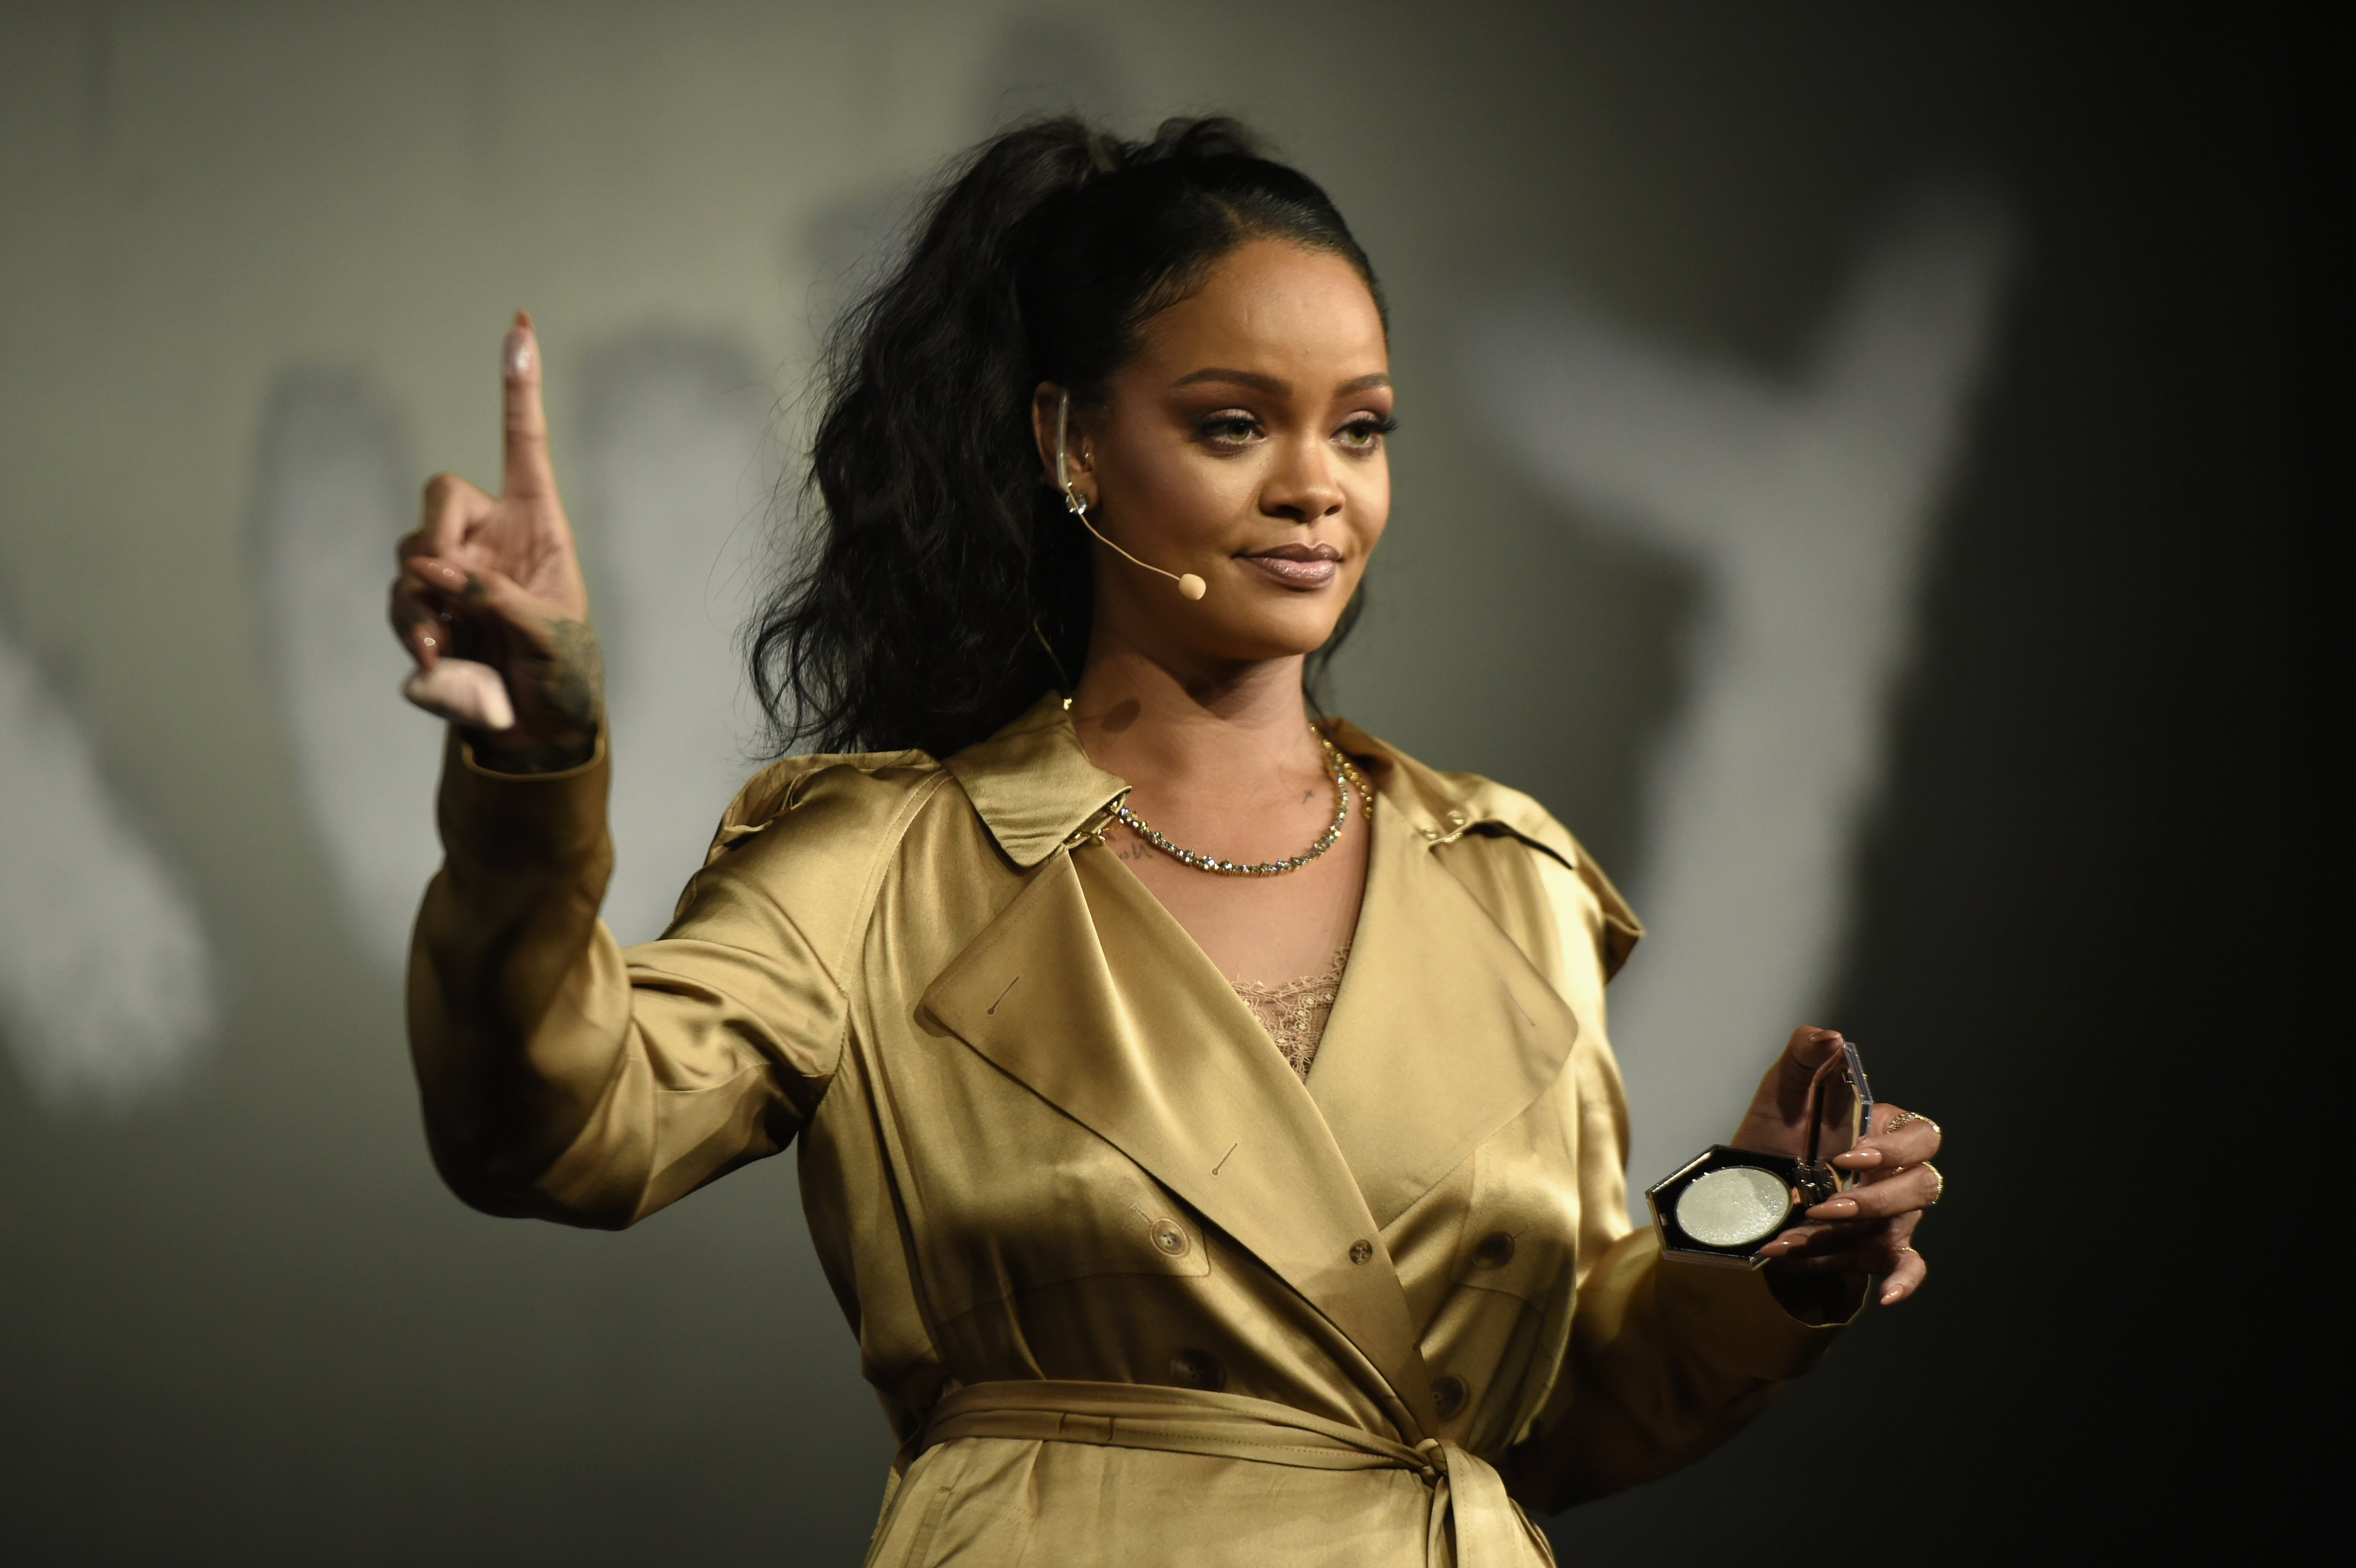 """Rihanna gestures on stage during her Fenty Beauty talk in collaboration with Sephora, for the launch of her new Stunna Lip paint """"Uninvited"""" on September 29, 2018. 